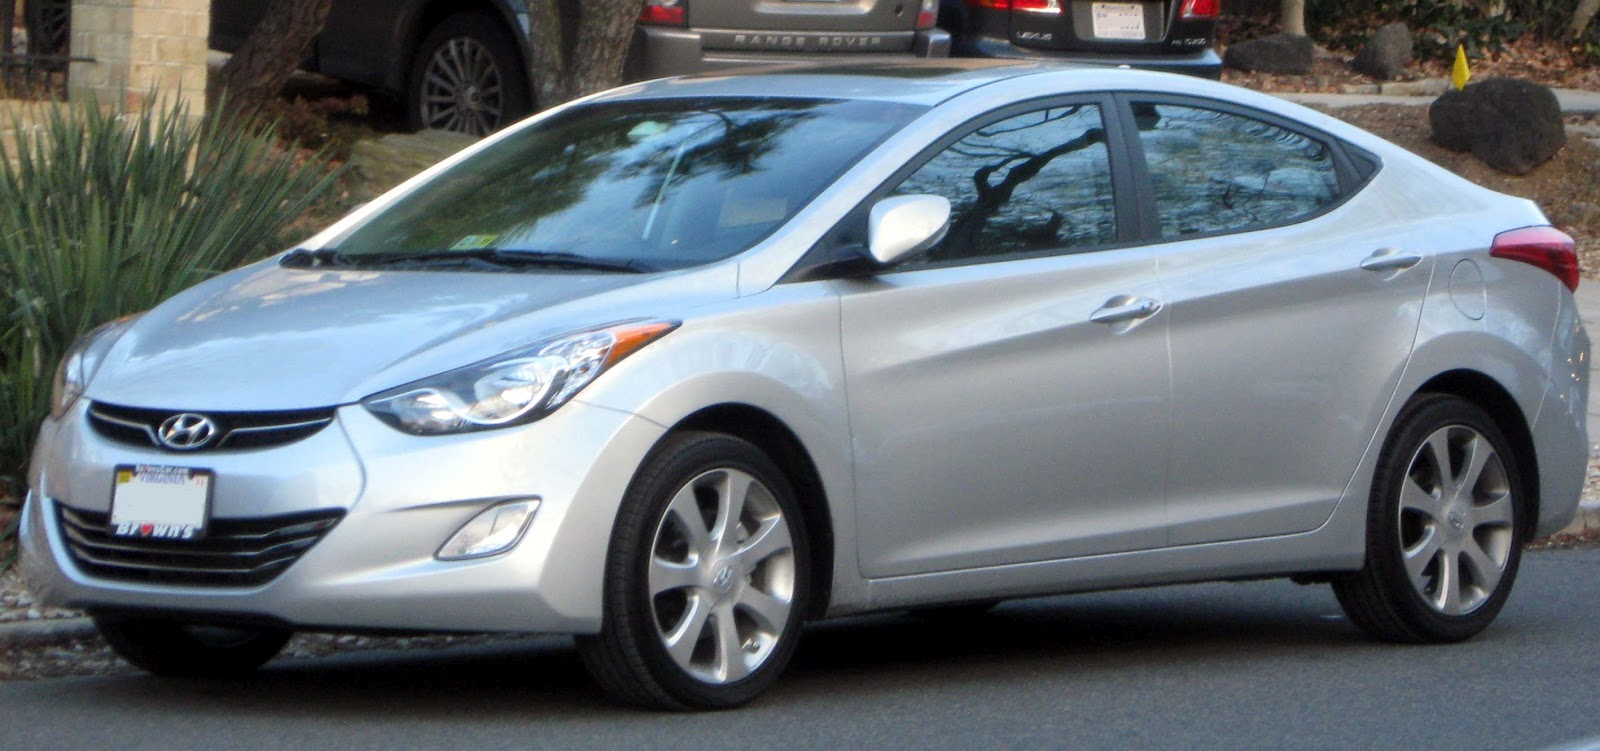 The Elantra receives several changes for 2013. The GLS trim now sports